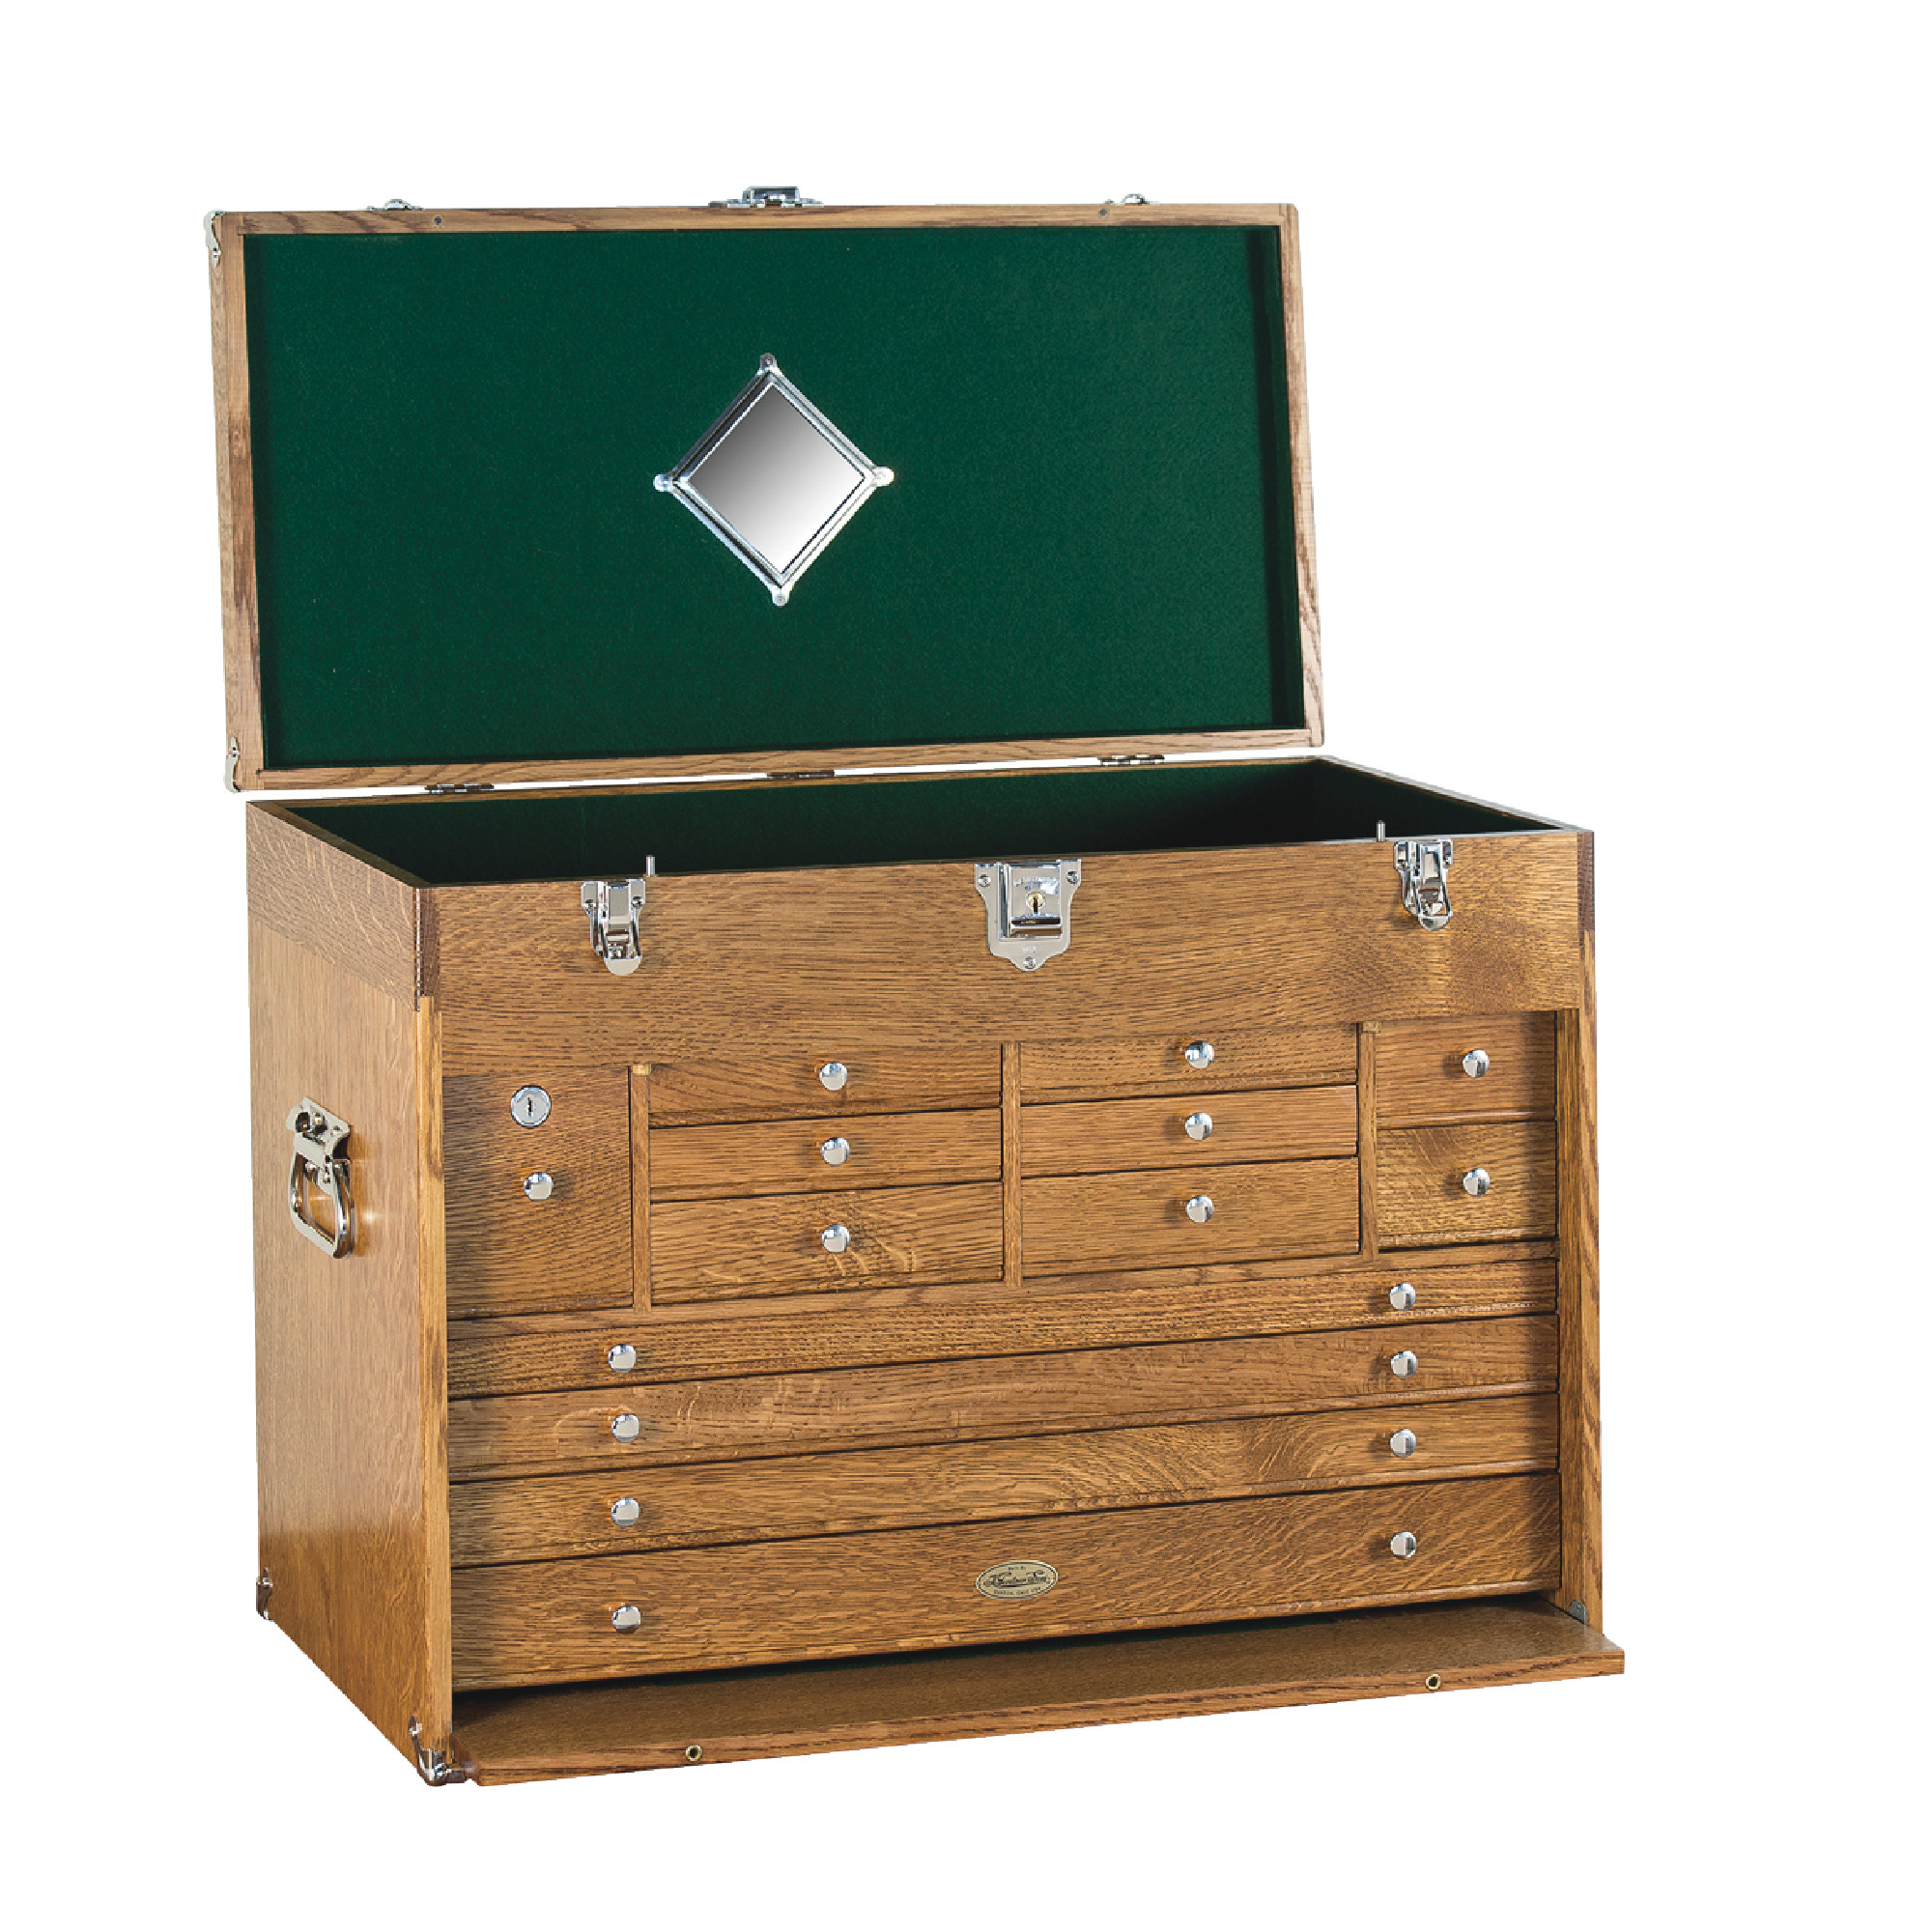 13-Drawer Heritage Series Top Chest with Stop-Trac System